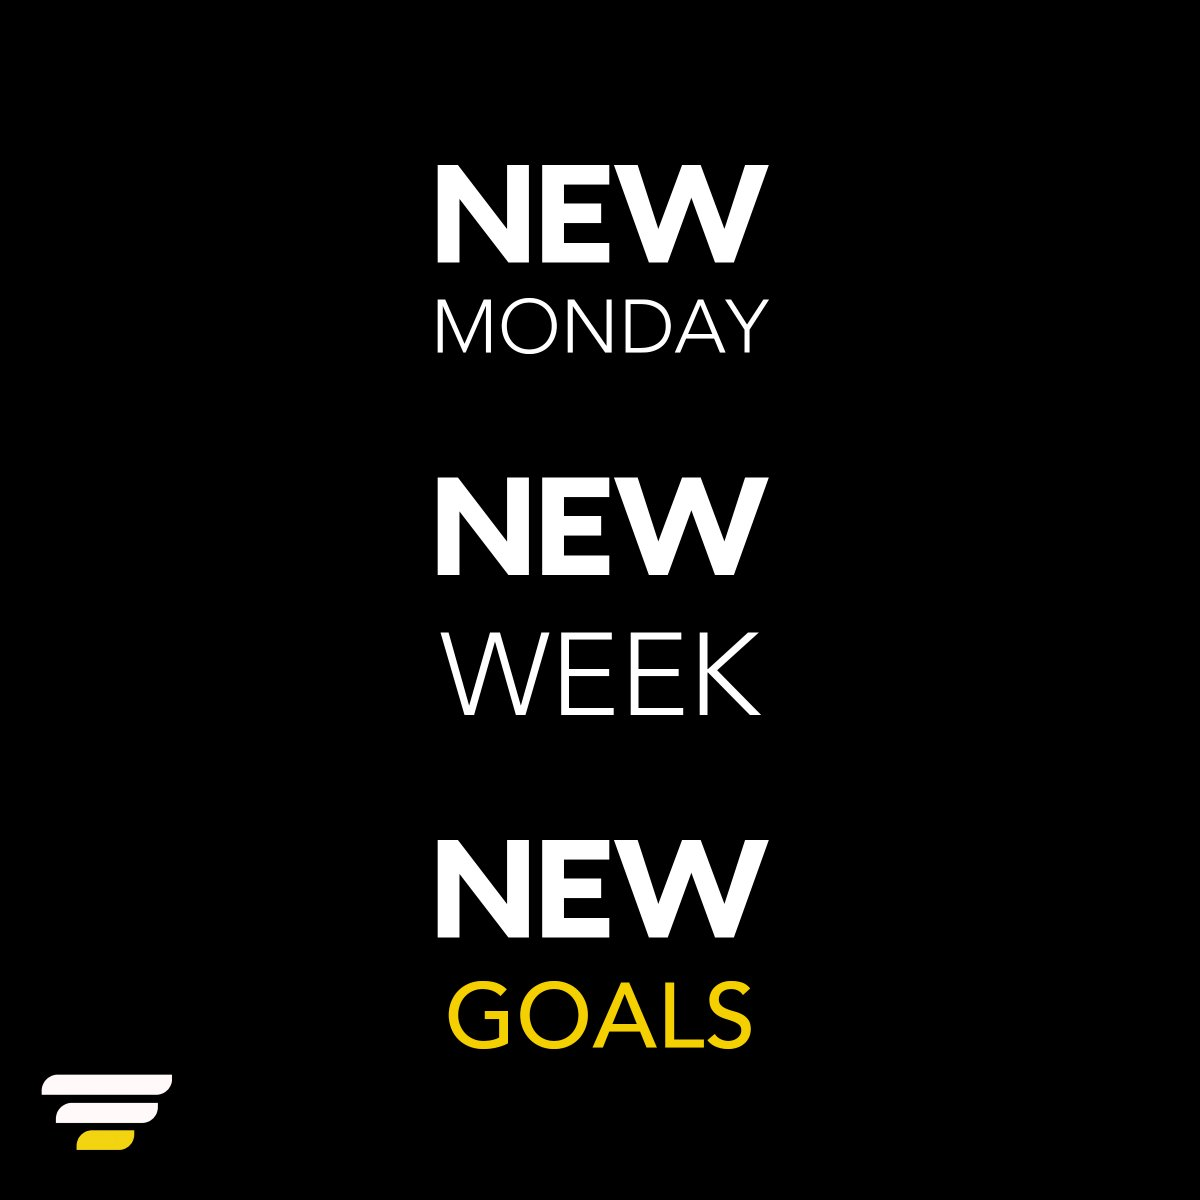 What are your goals this week?💪 https://t.co/qUEElF6hKw